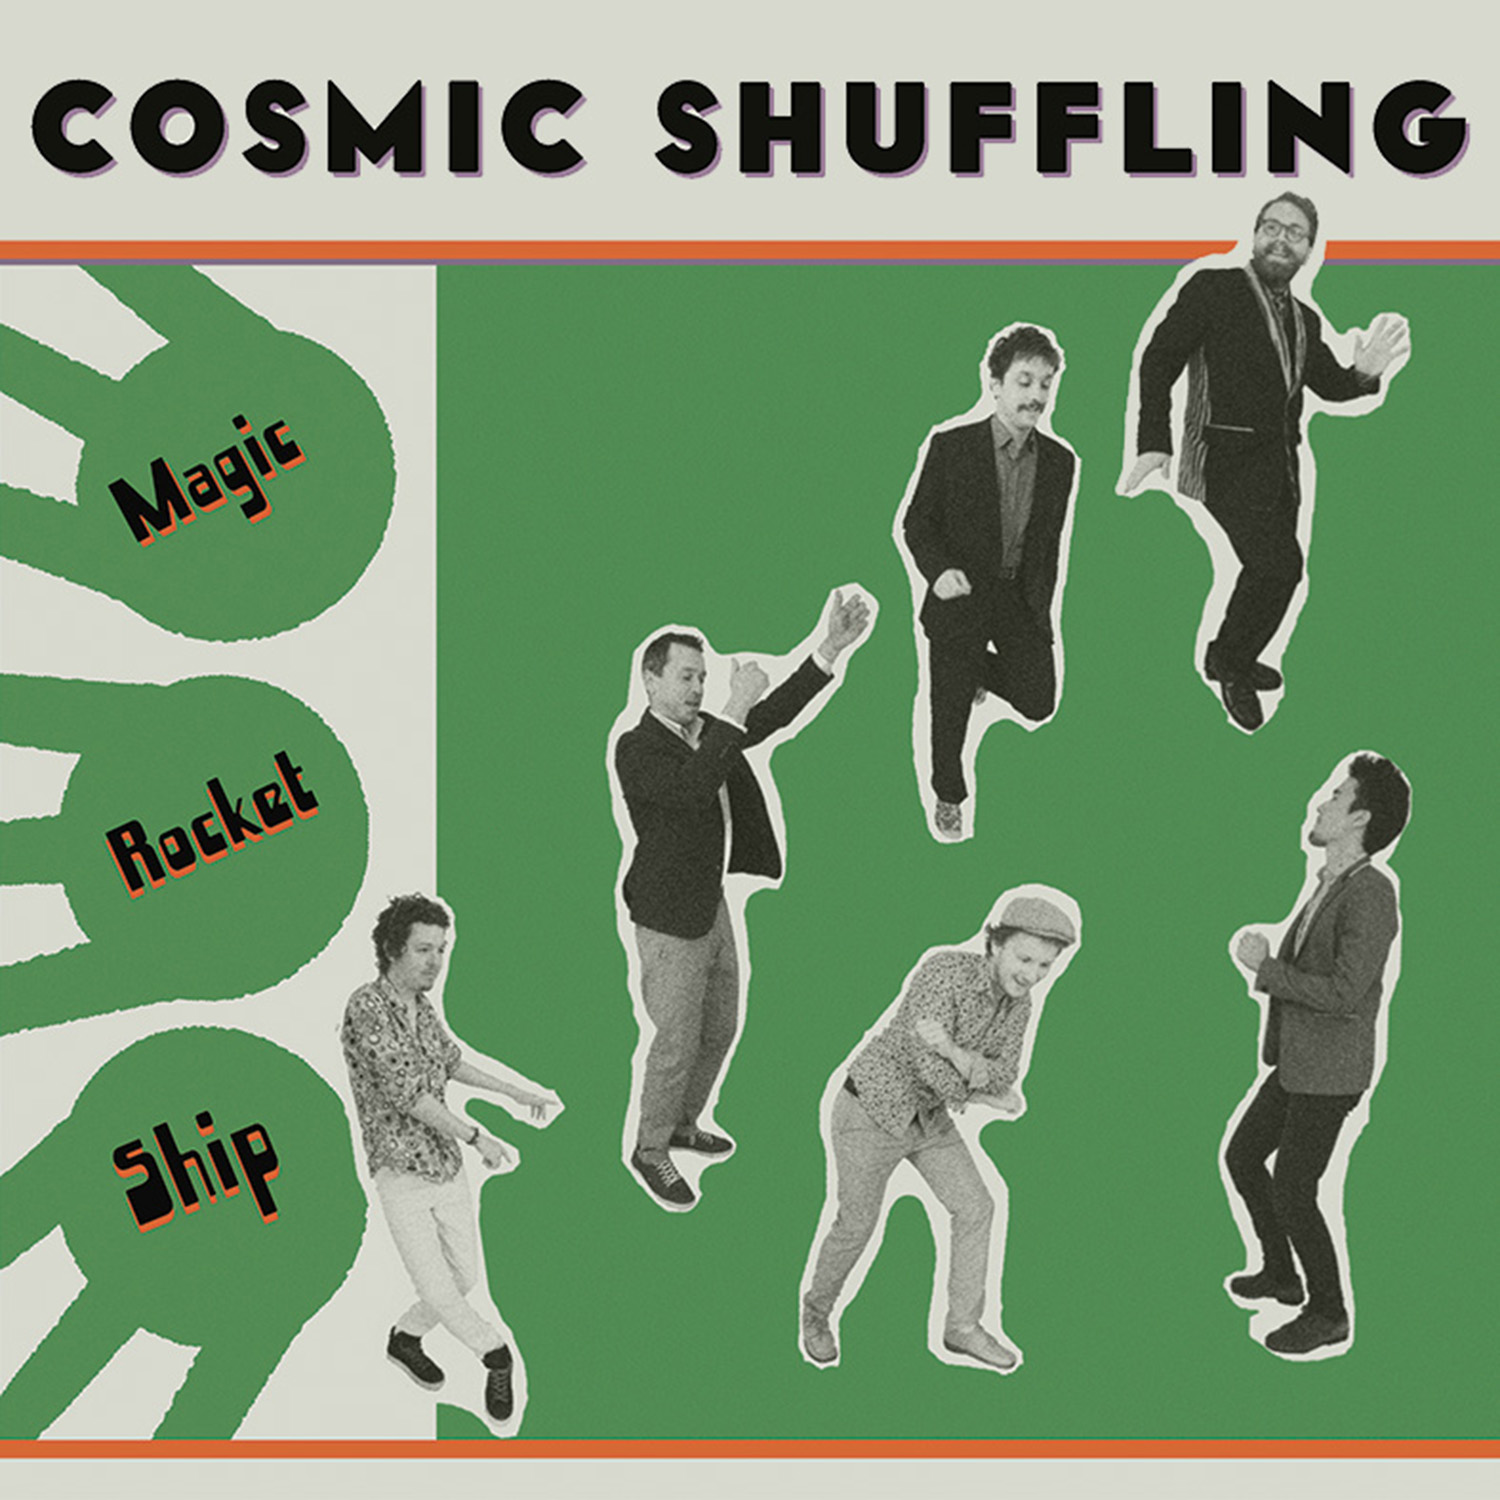 Rocking Steady For Some Cosmic Shuffling?